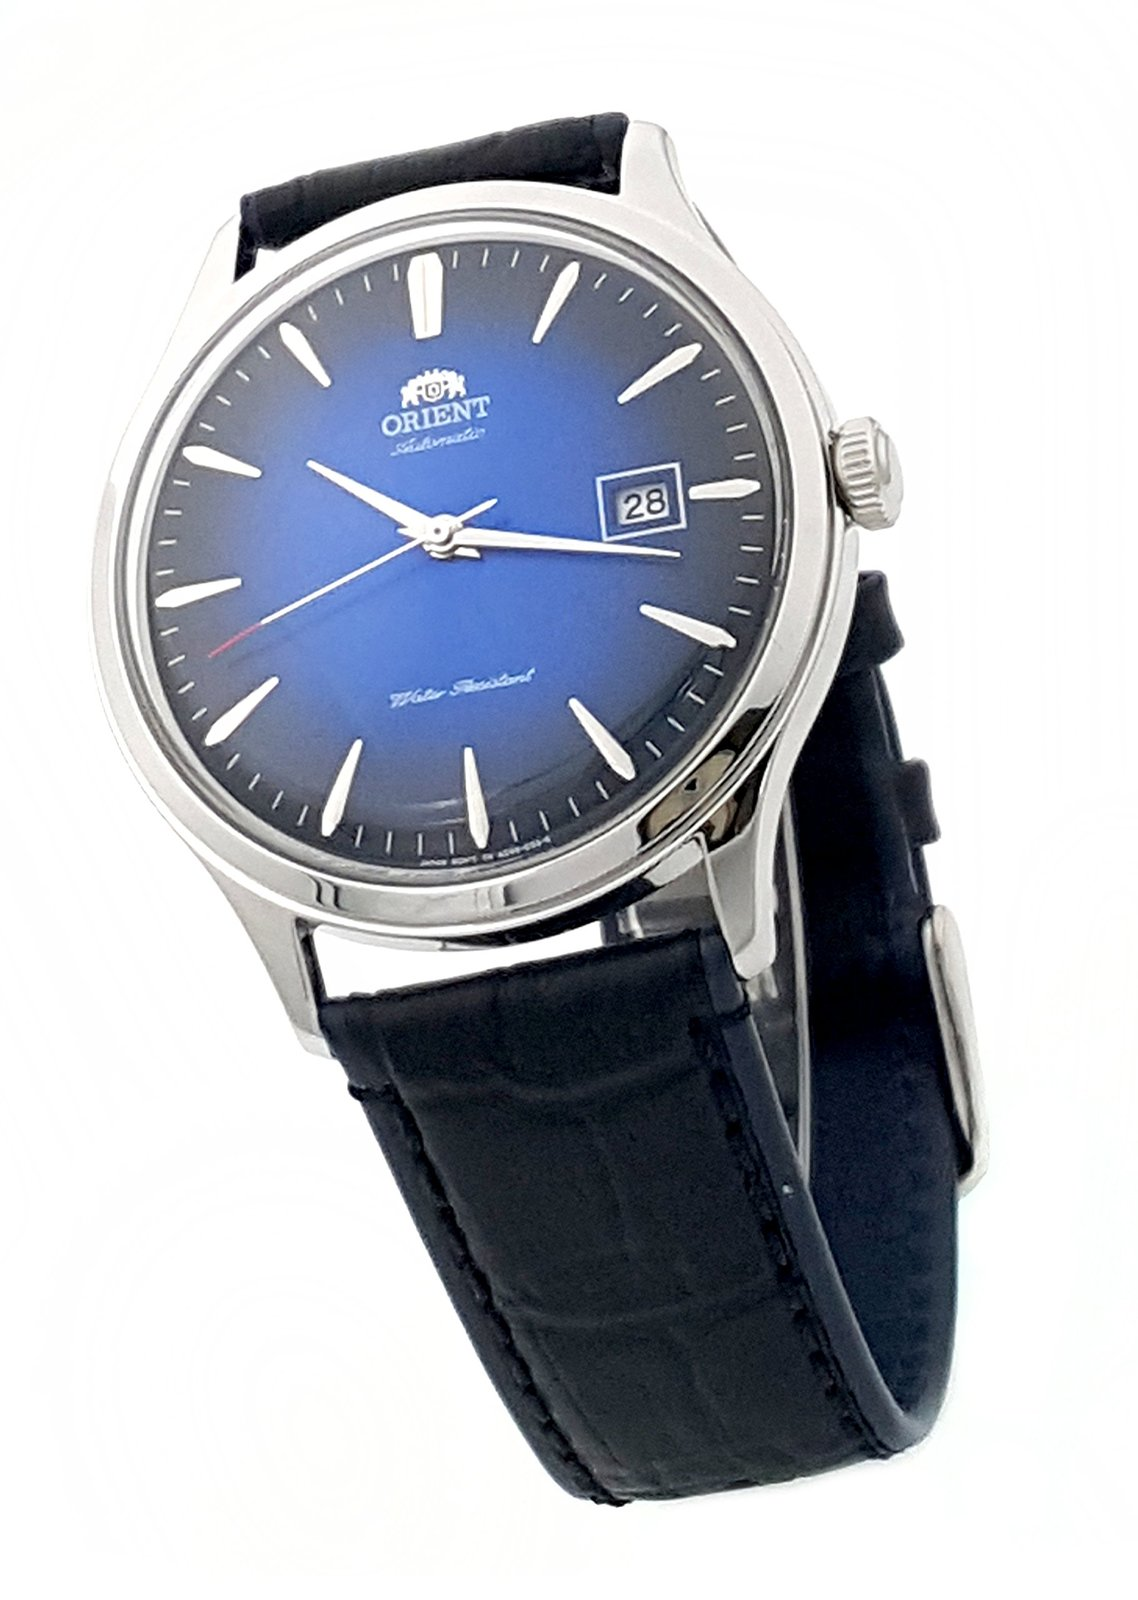 Orient bambino 4 classic automatic with hand winding blue gradient dial watch wristwatches for Gradient dial watch